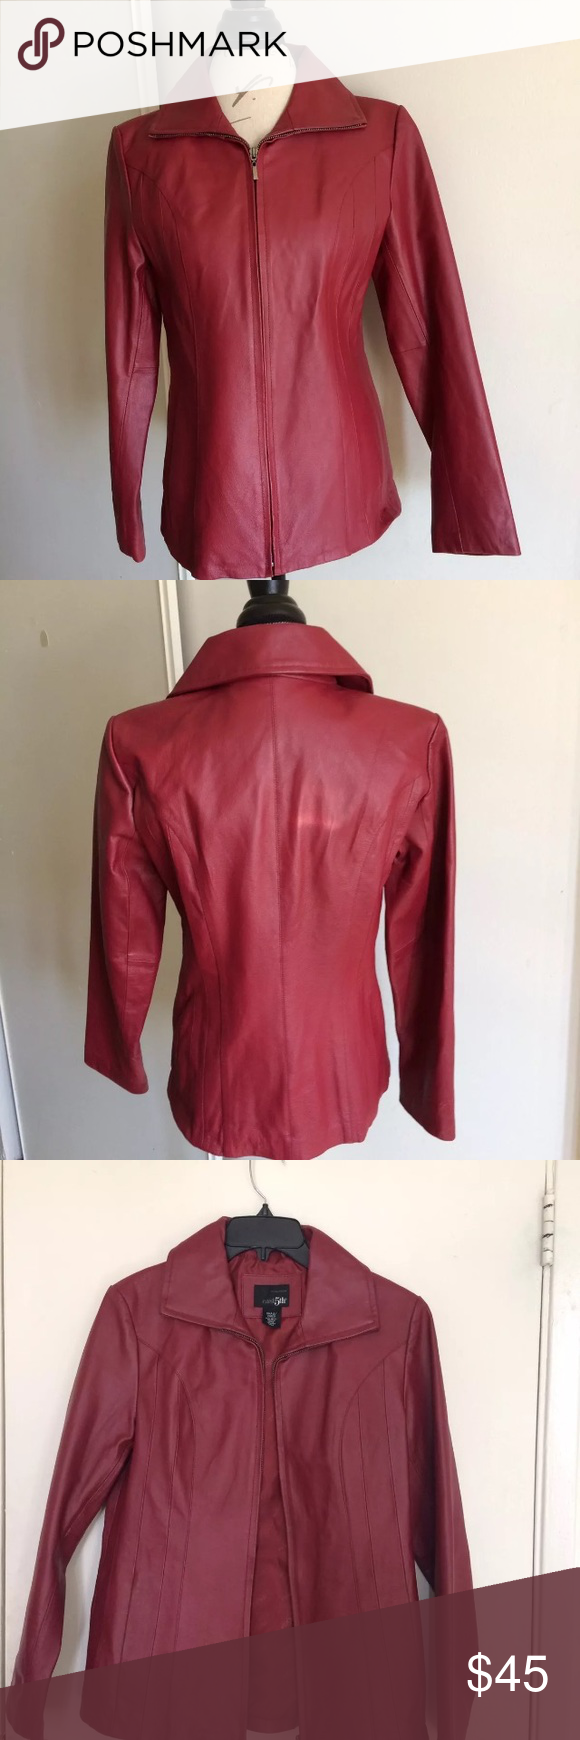 EAST 5TH Womens Red Burgundy Jacket Size Small EAST 5TH